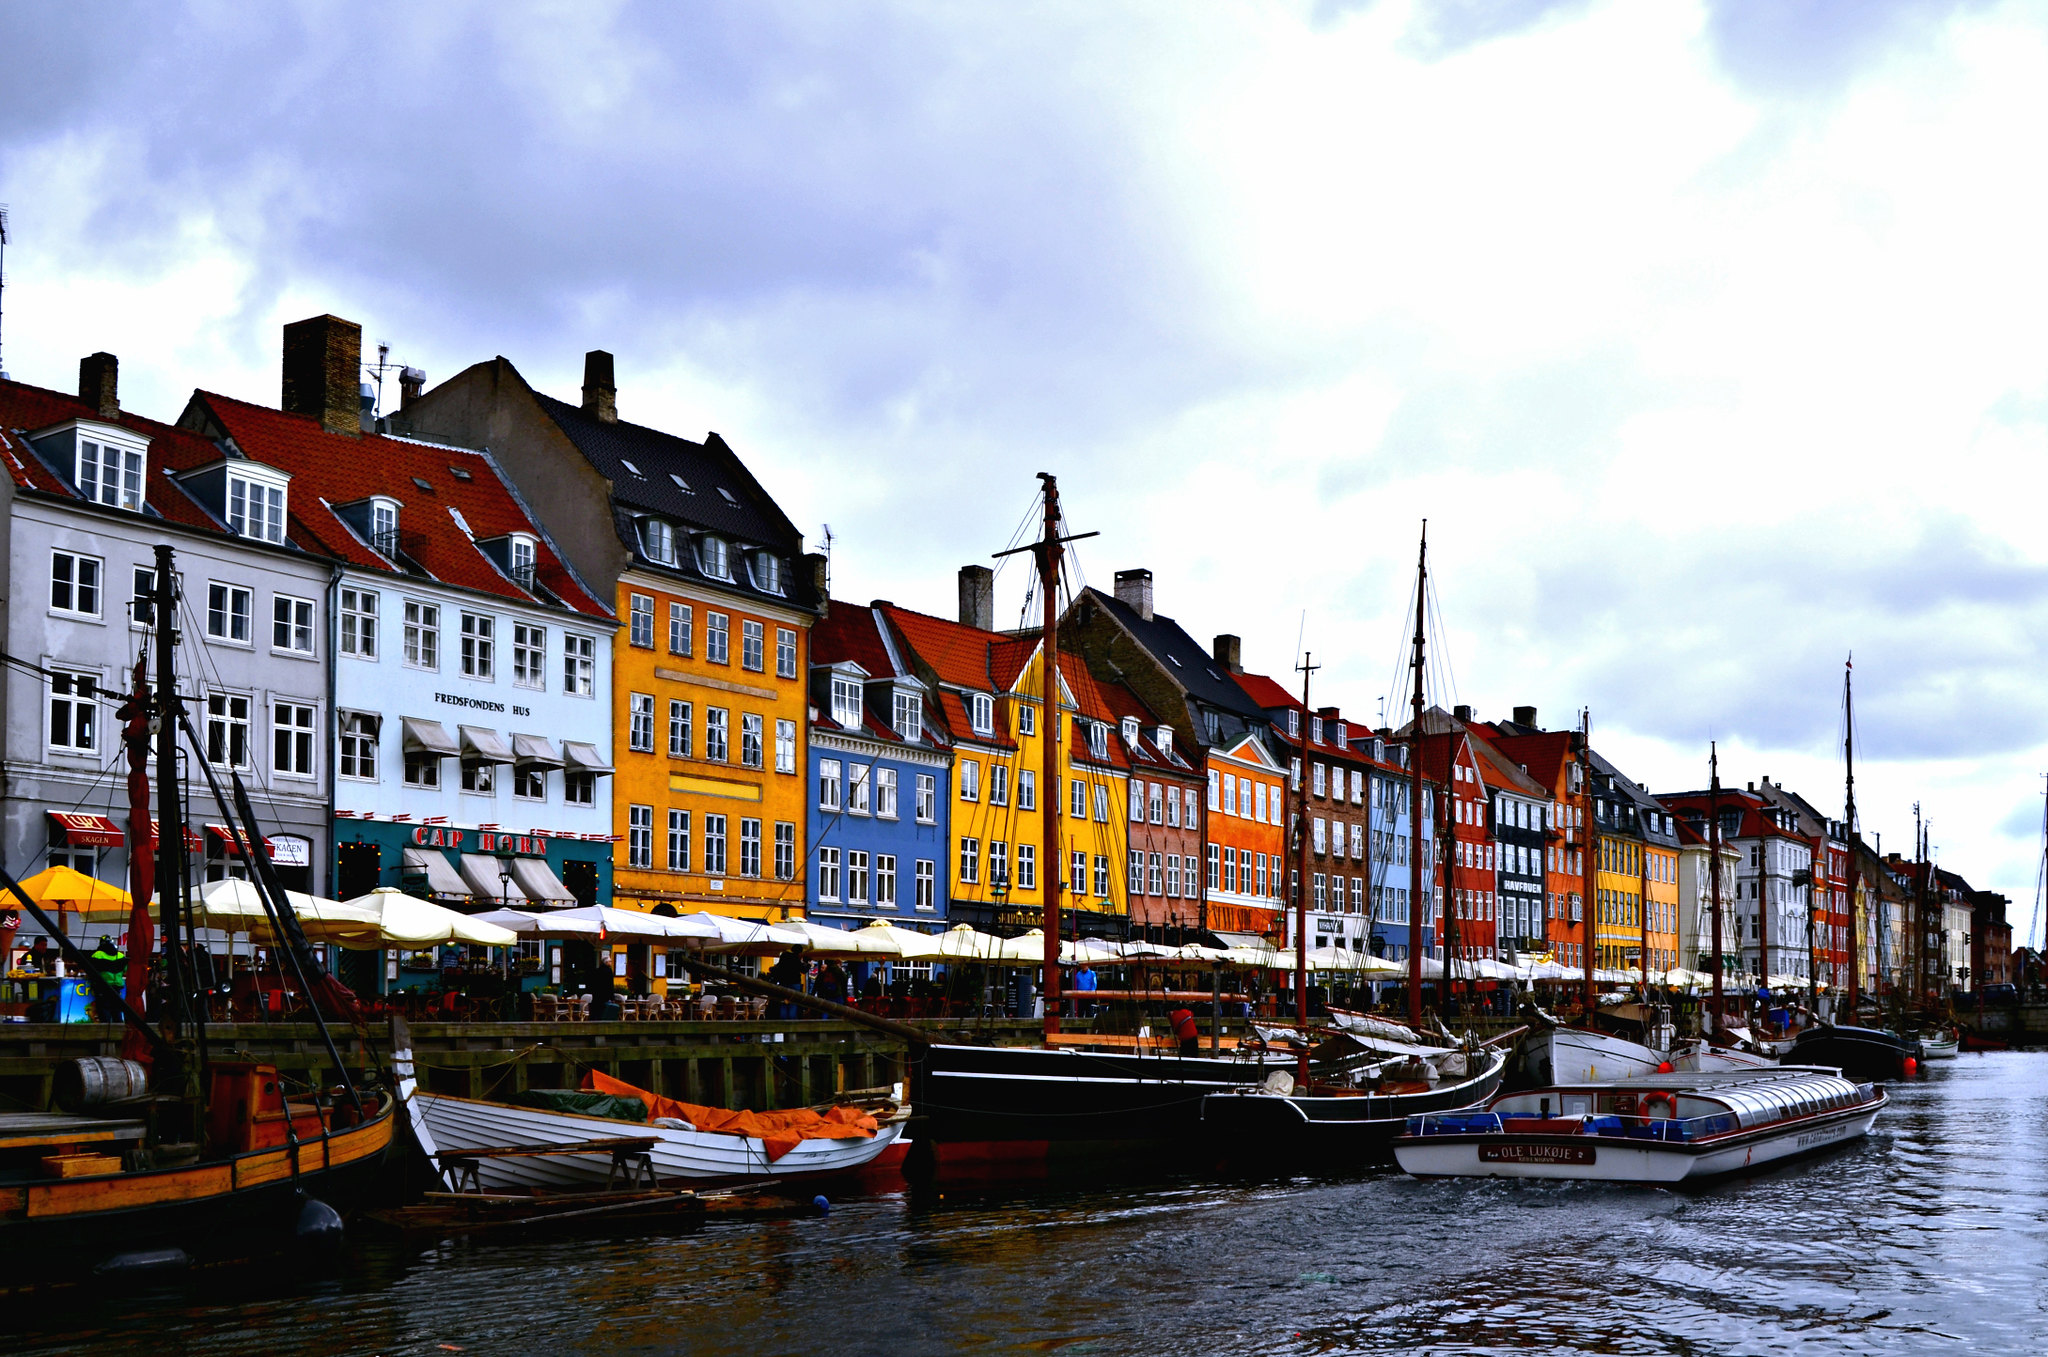 City breaks in Europe can be cheap - admire Copenhagen's beautiful Nyhavn completely free of charge